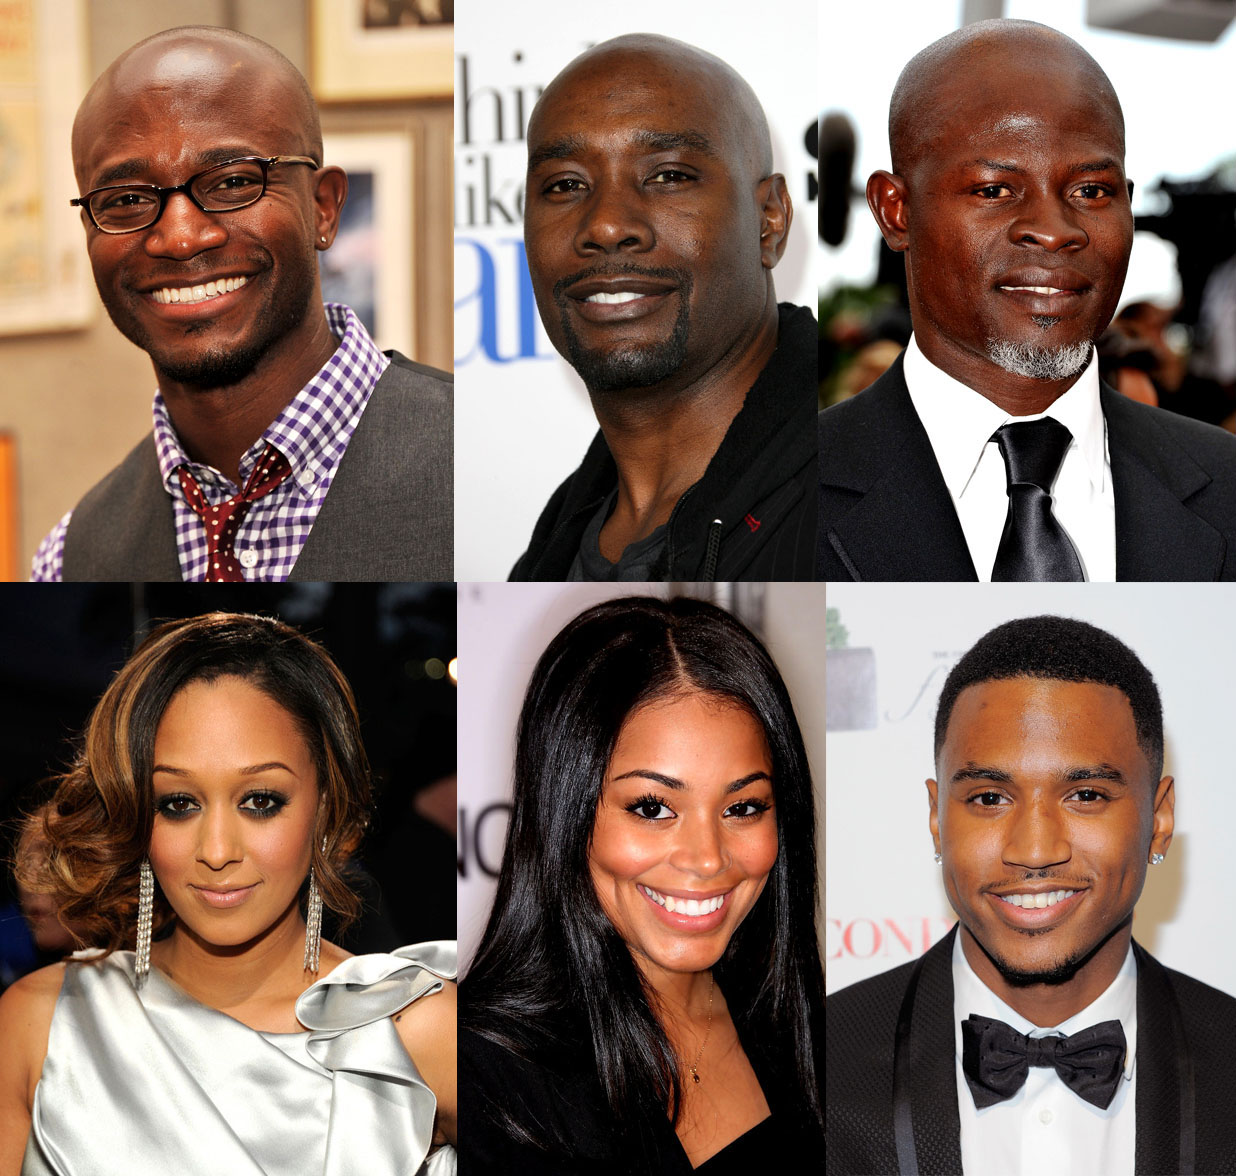 bd60c0e06f5a715b7c342fd5df79751d Trey Songz, Morris Chestnut, Derek Luke, & Taye Diggs Team For Baggage Claim Movie